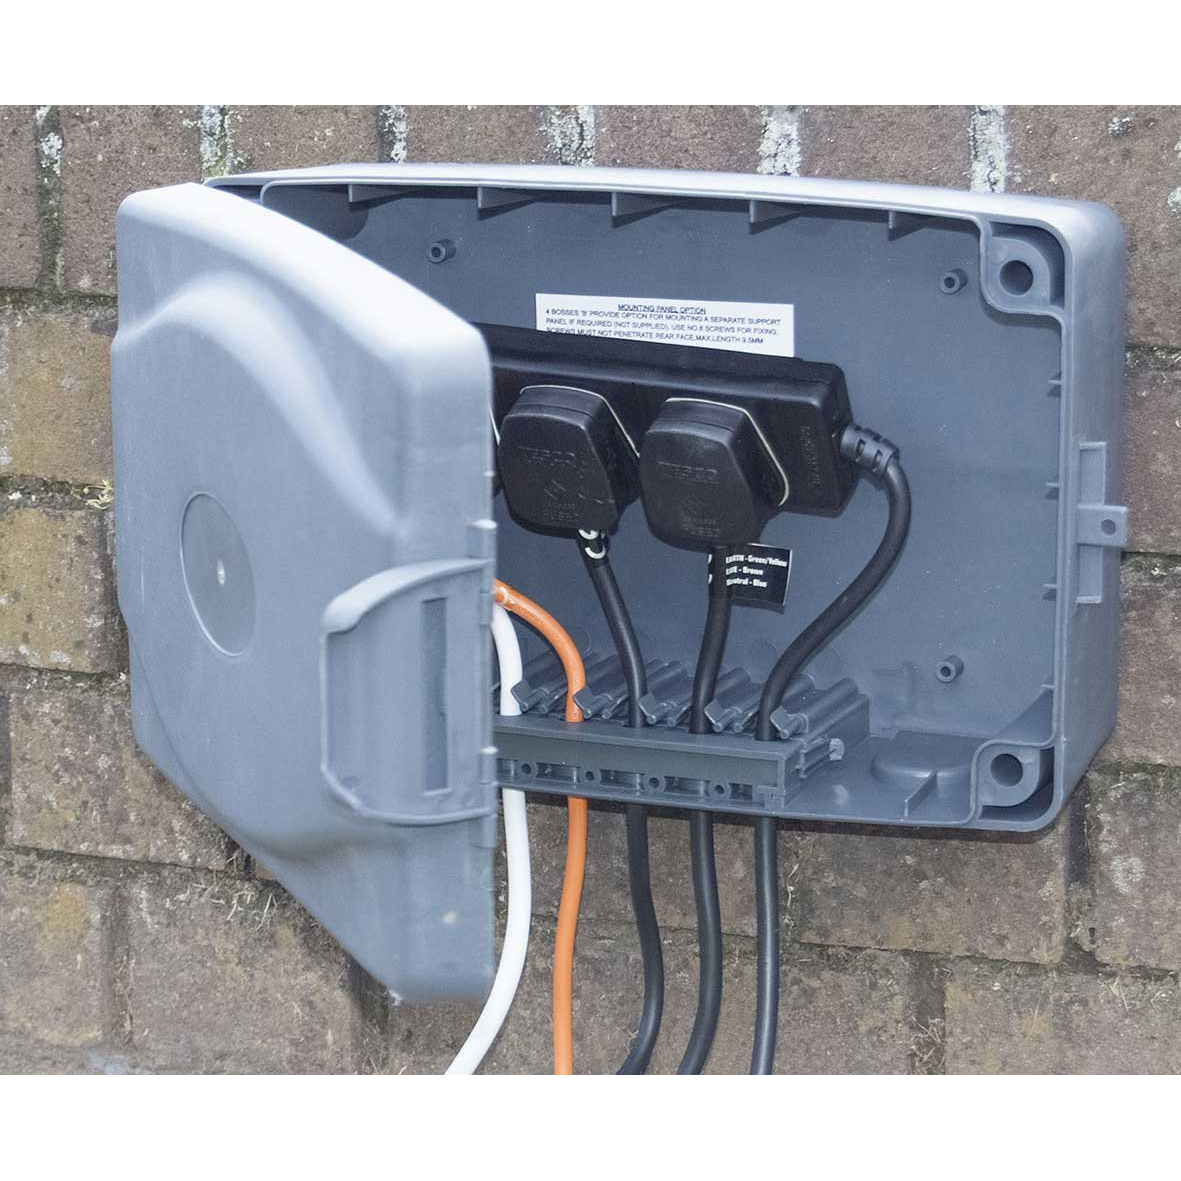 Masterplug Weatherproof Box With 8m Extension Lead For